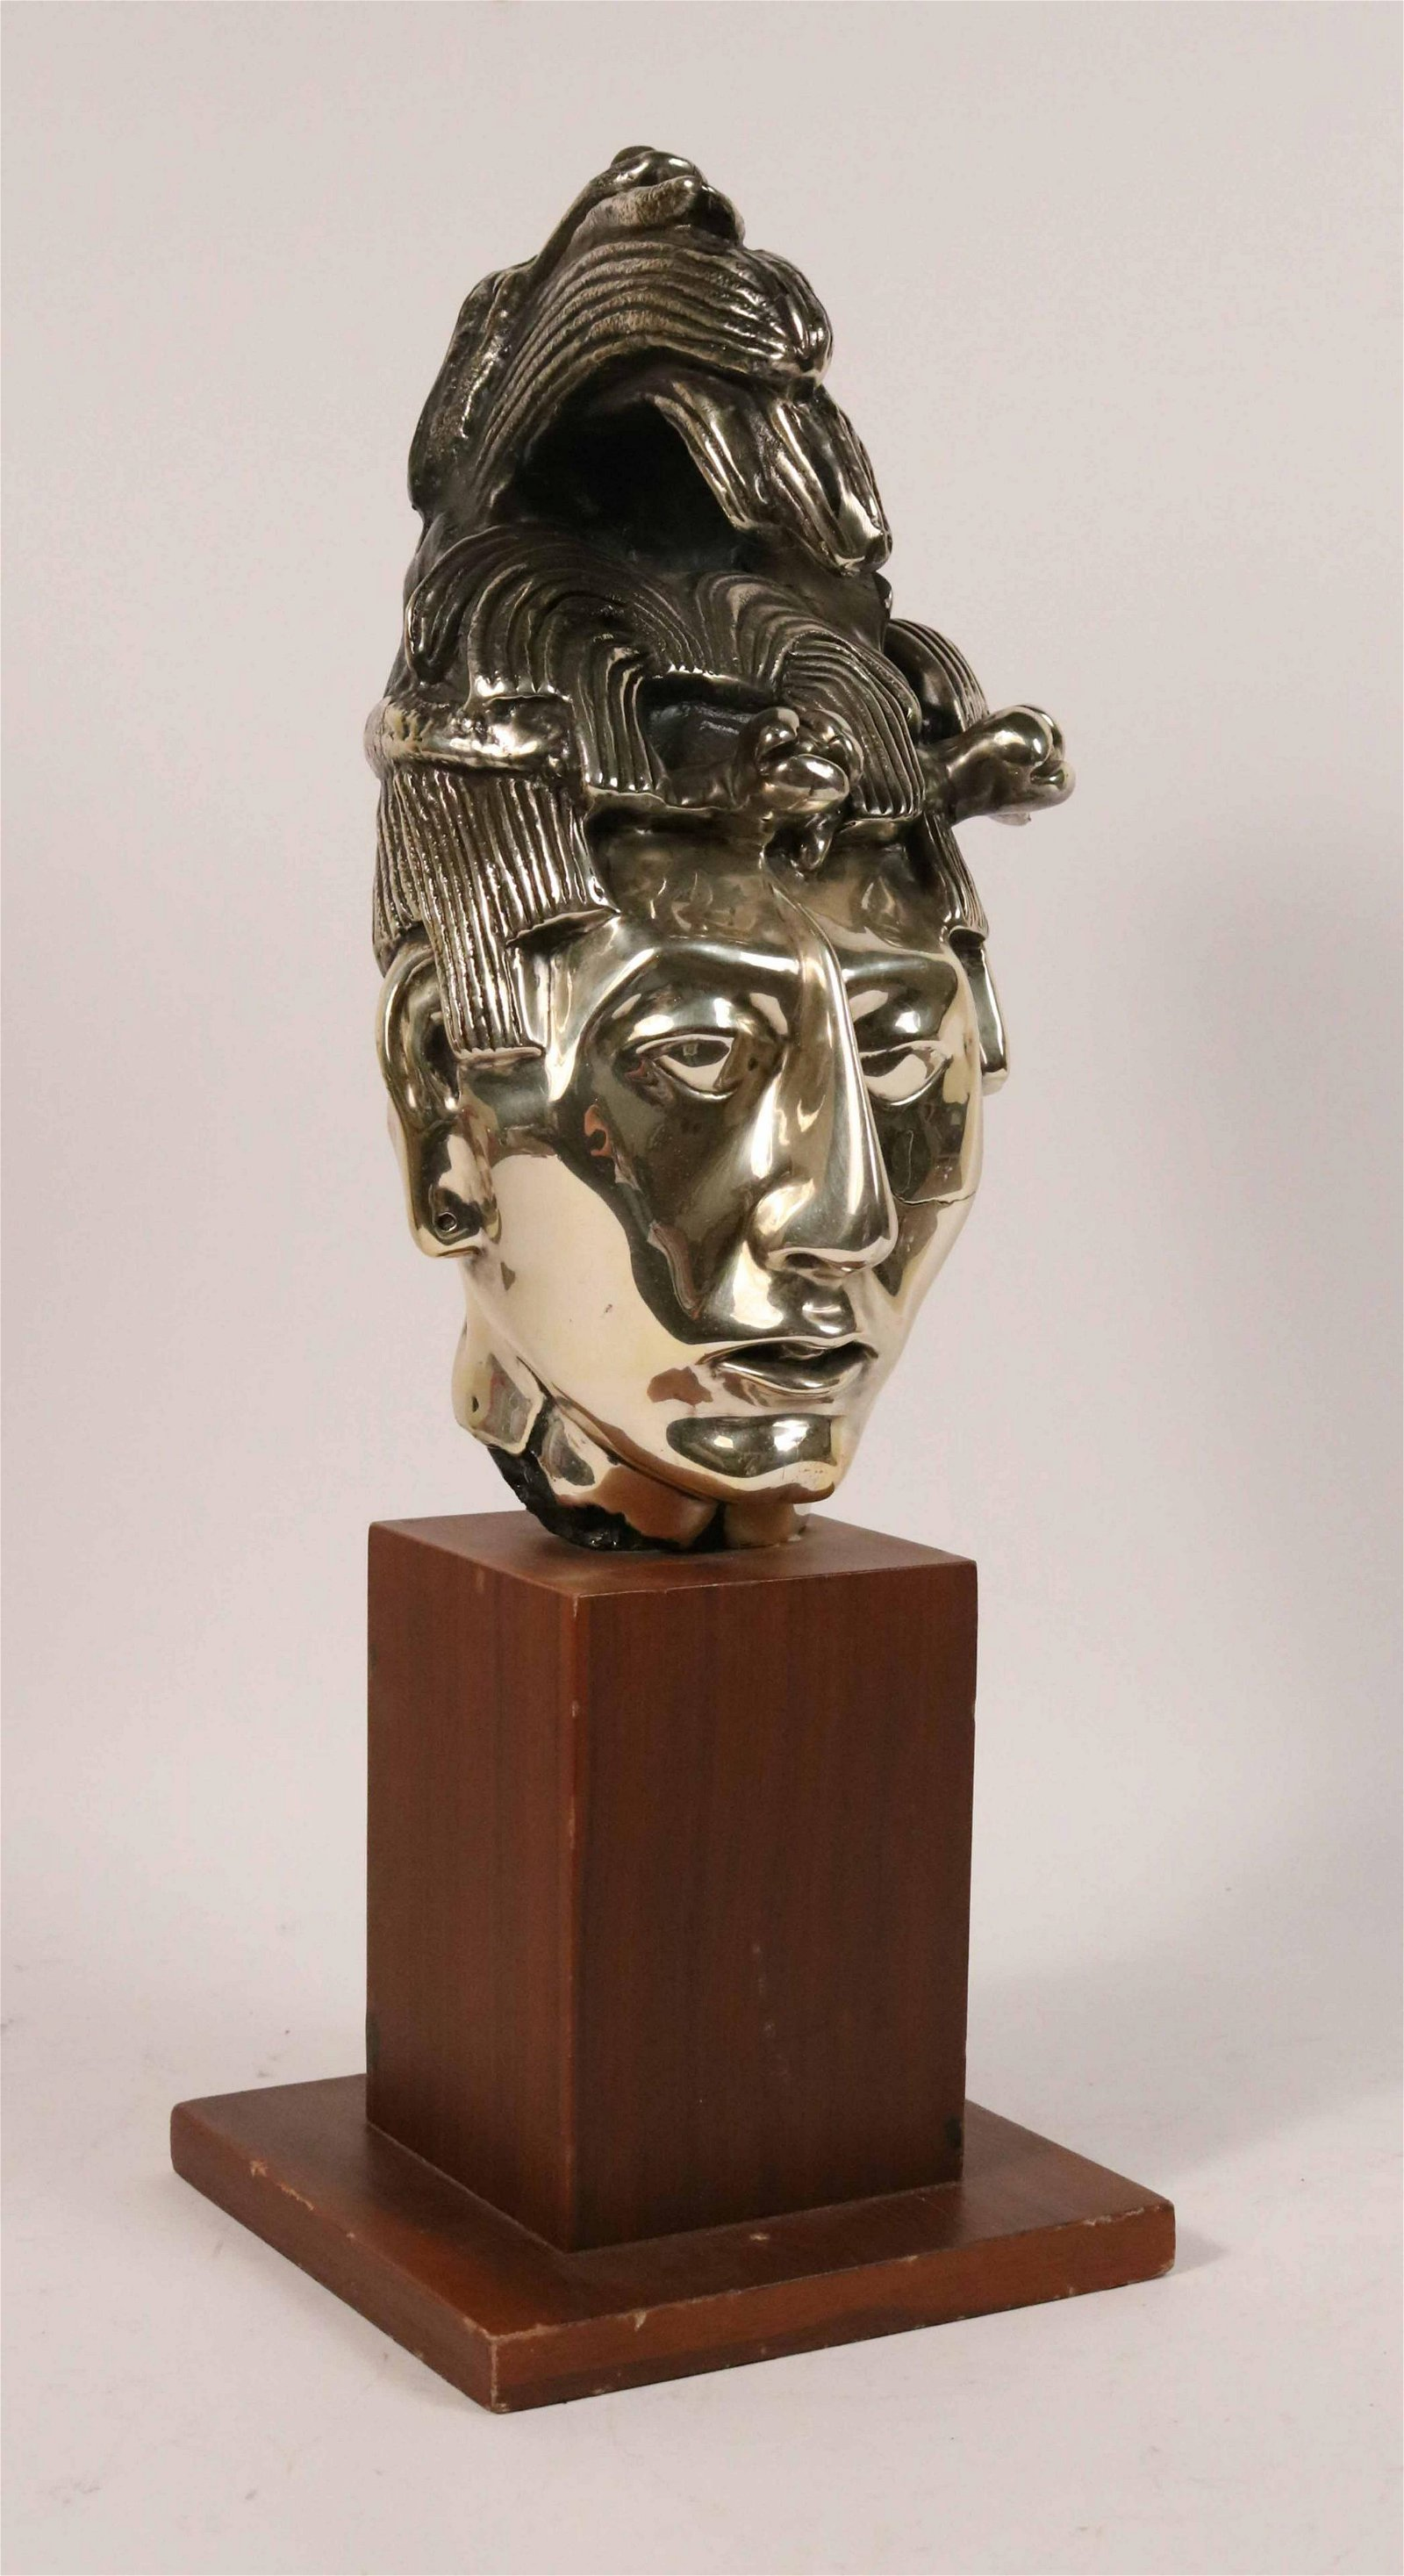 Silver Plated Bust of a South American Man